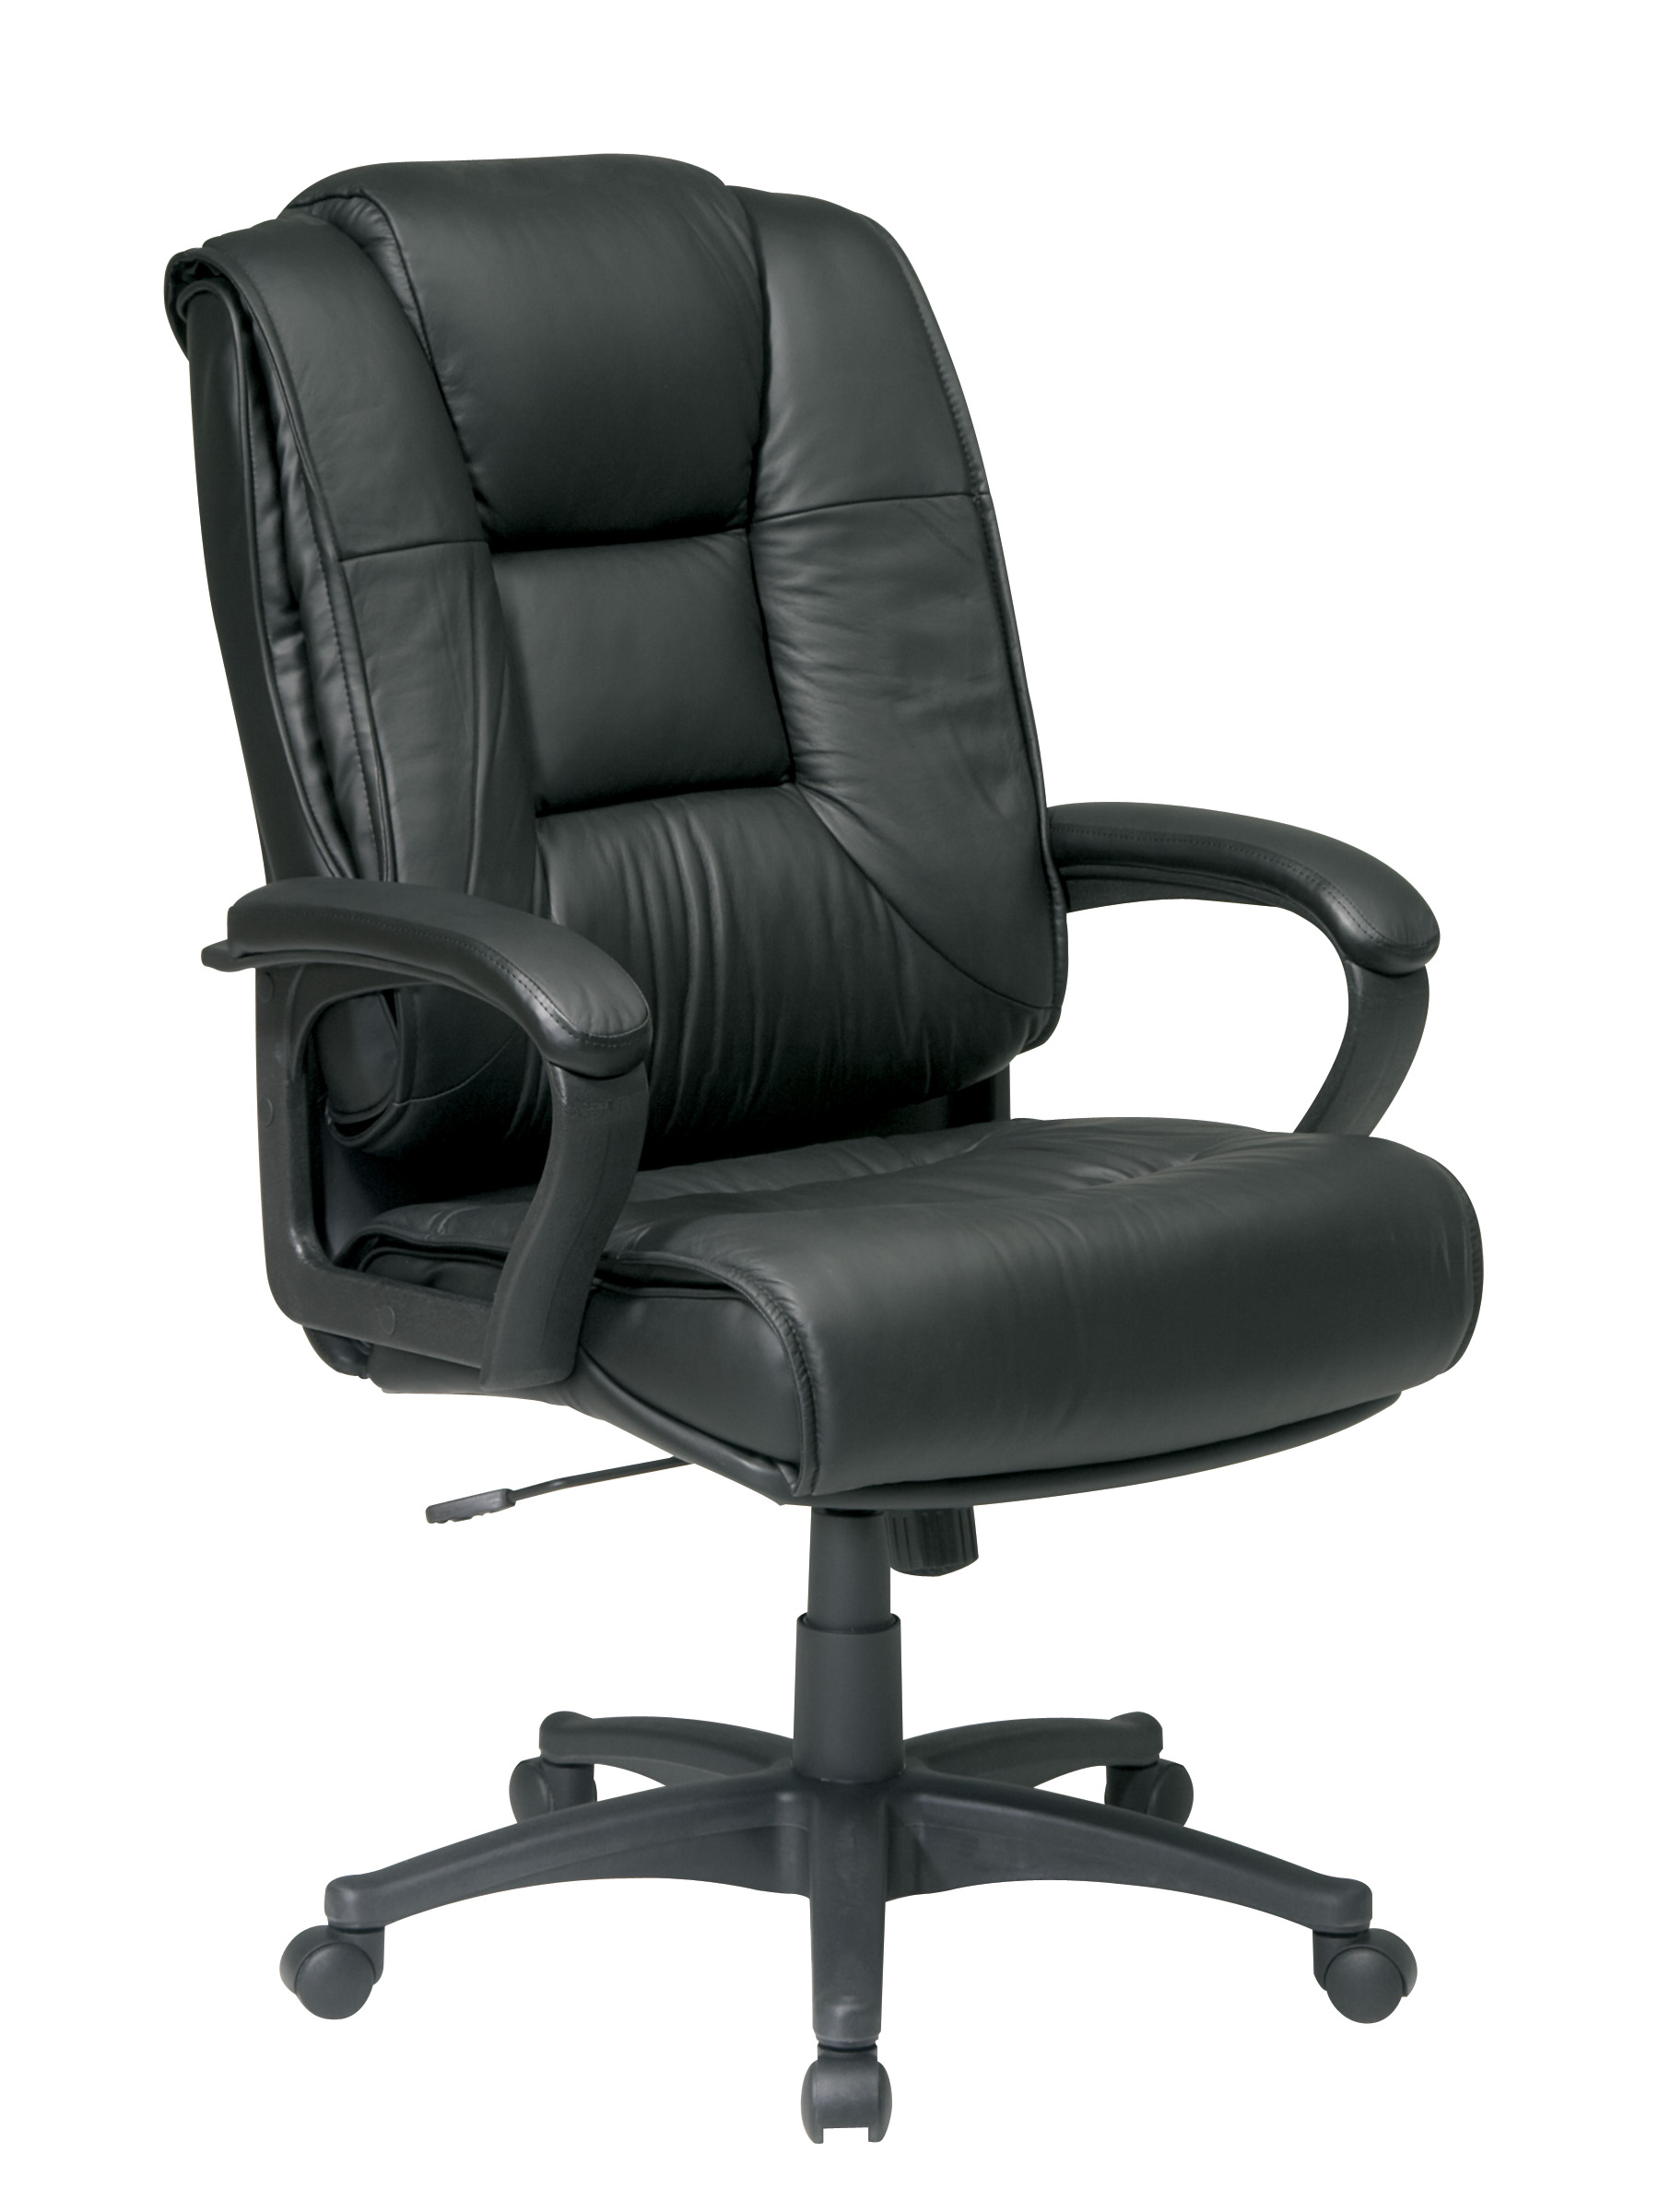 Executive Office Chair Deluxe High Back